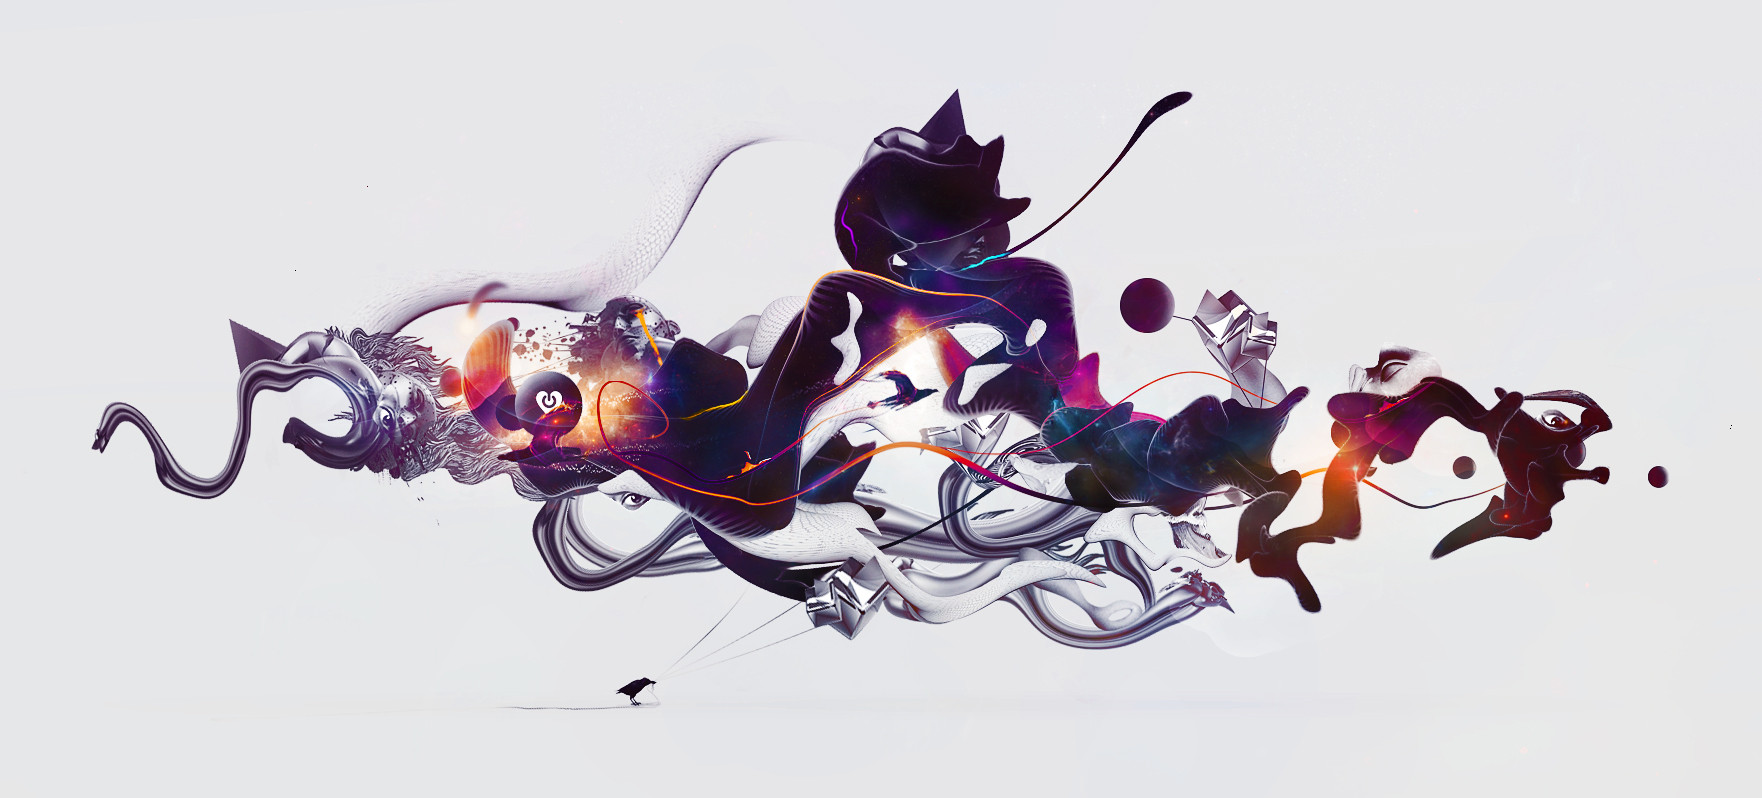 Digital Artworks - Philip Brunner